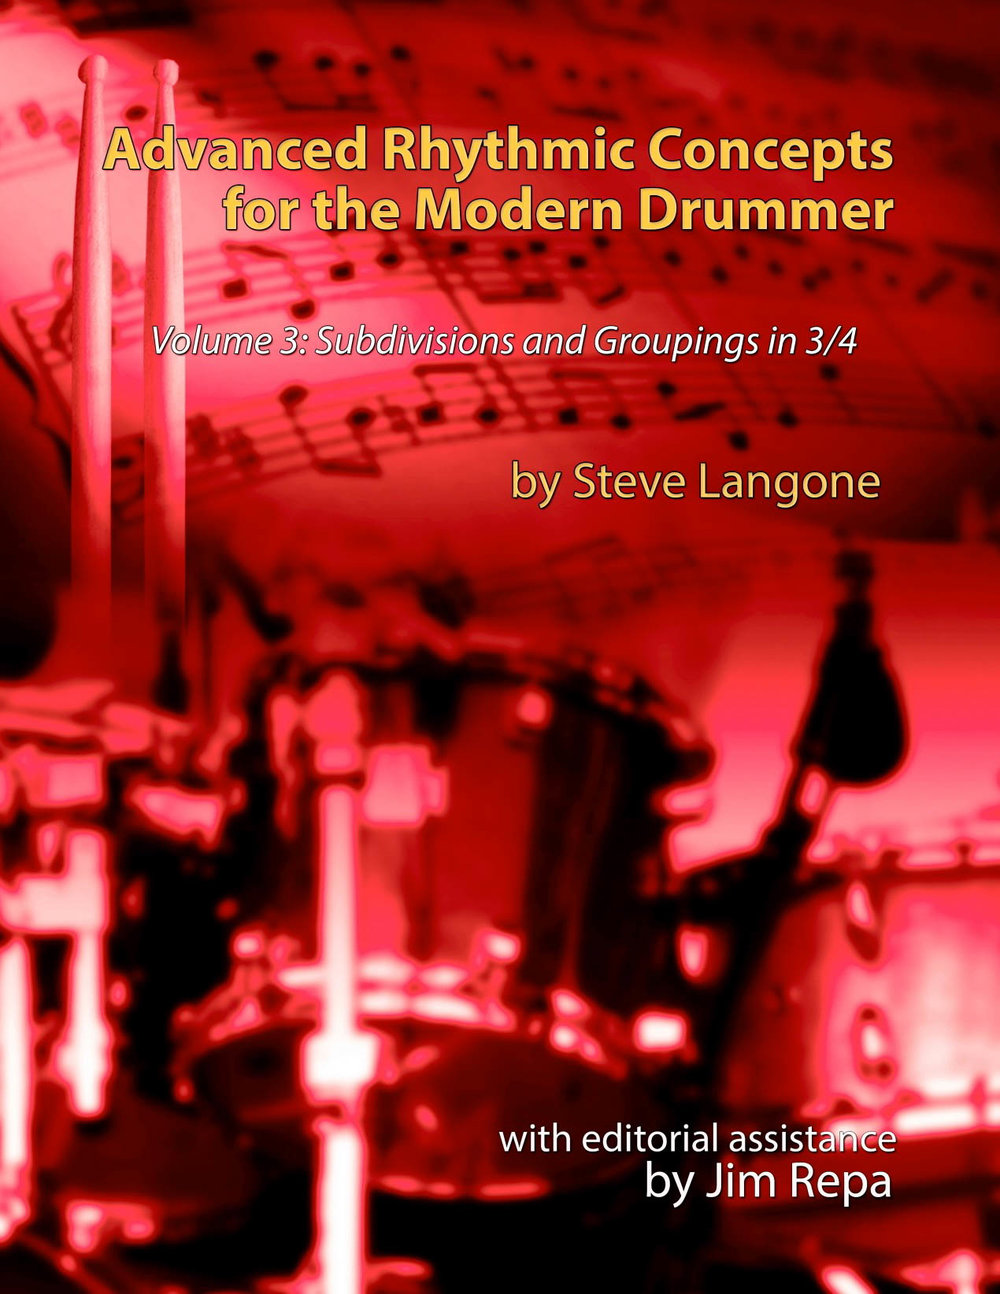 New! Volume 3 - This is the third volume in a series, and it focuses on rhythmic patterns in 3/4. The book introduces rhythmic concepts that can be used by drummers or any musician to expand his or her rhythmic repertoire for improvisation or composition. It combines concepts taught to the author by Alan Dawson with South Indian Konnakol syllables. It is a comprehensive study of polyrhythms that allows drummers and other musicians to delve deeply into modern rhythmic concepts. This volume stands on its own. You can study and practice the exercises in Volume 3 even if you have not seen or studied the exercises in Volumes 1 and 2.Available from Amazon.com as softcover book.Available from Amazon.com as Digital - Kindle book.Series: Advanced Rhythmic Concepts for the Modern Drummer (Book 3)Paperback: 112 pagesLanguage: EnglishISBN-10: 179851141XISBN-13: 978-1798511411Product Dimensions: 8.5 x 0.3 x 11 inches